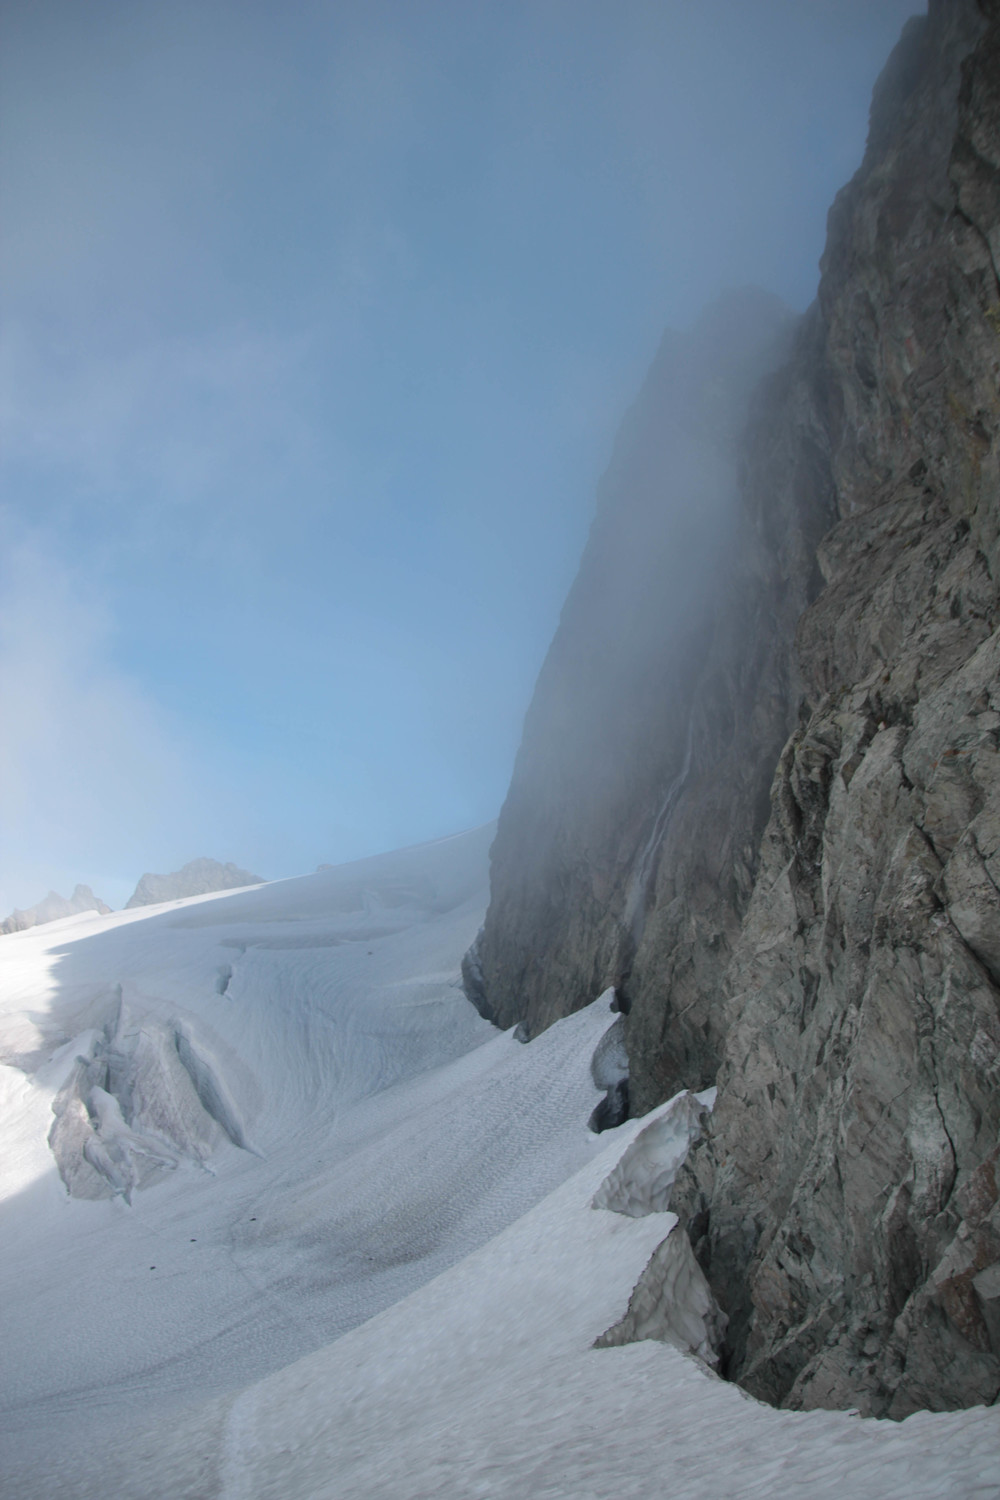 Looking back on some huge crevasses on the Upper Curtis and a huge waterfall coming down on the right.